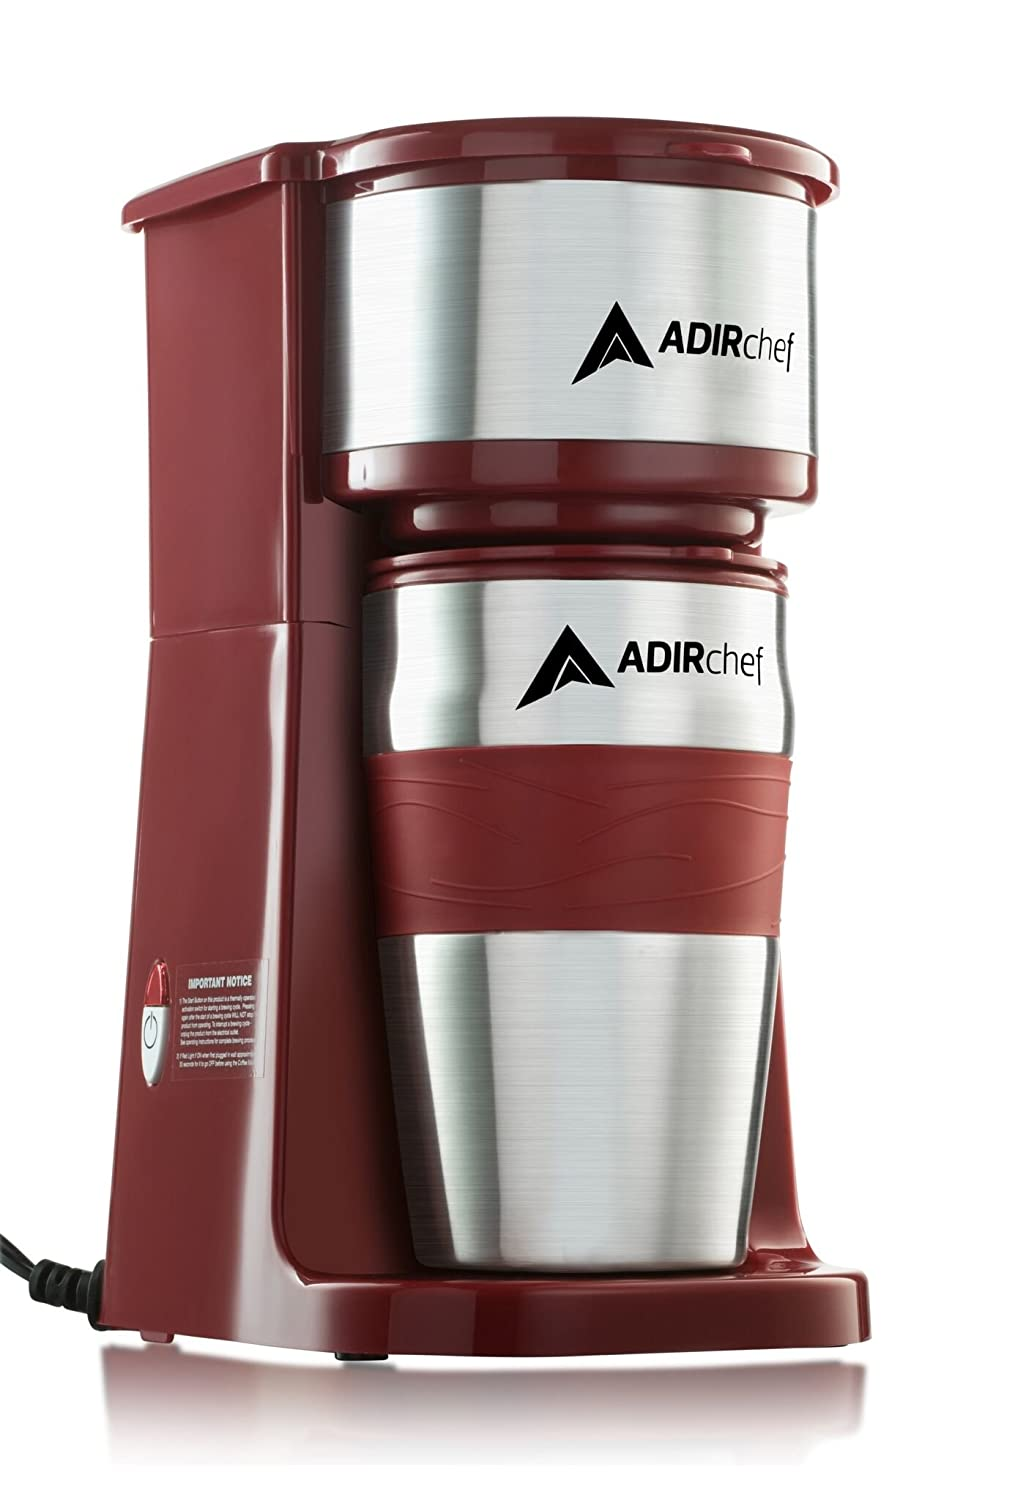 AdirChef Grab N' Go Personal Coffee Maker with 15 oz. Travel Mug (Ruby Red)